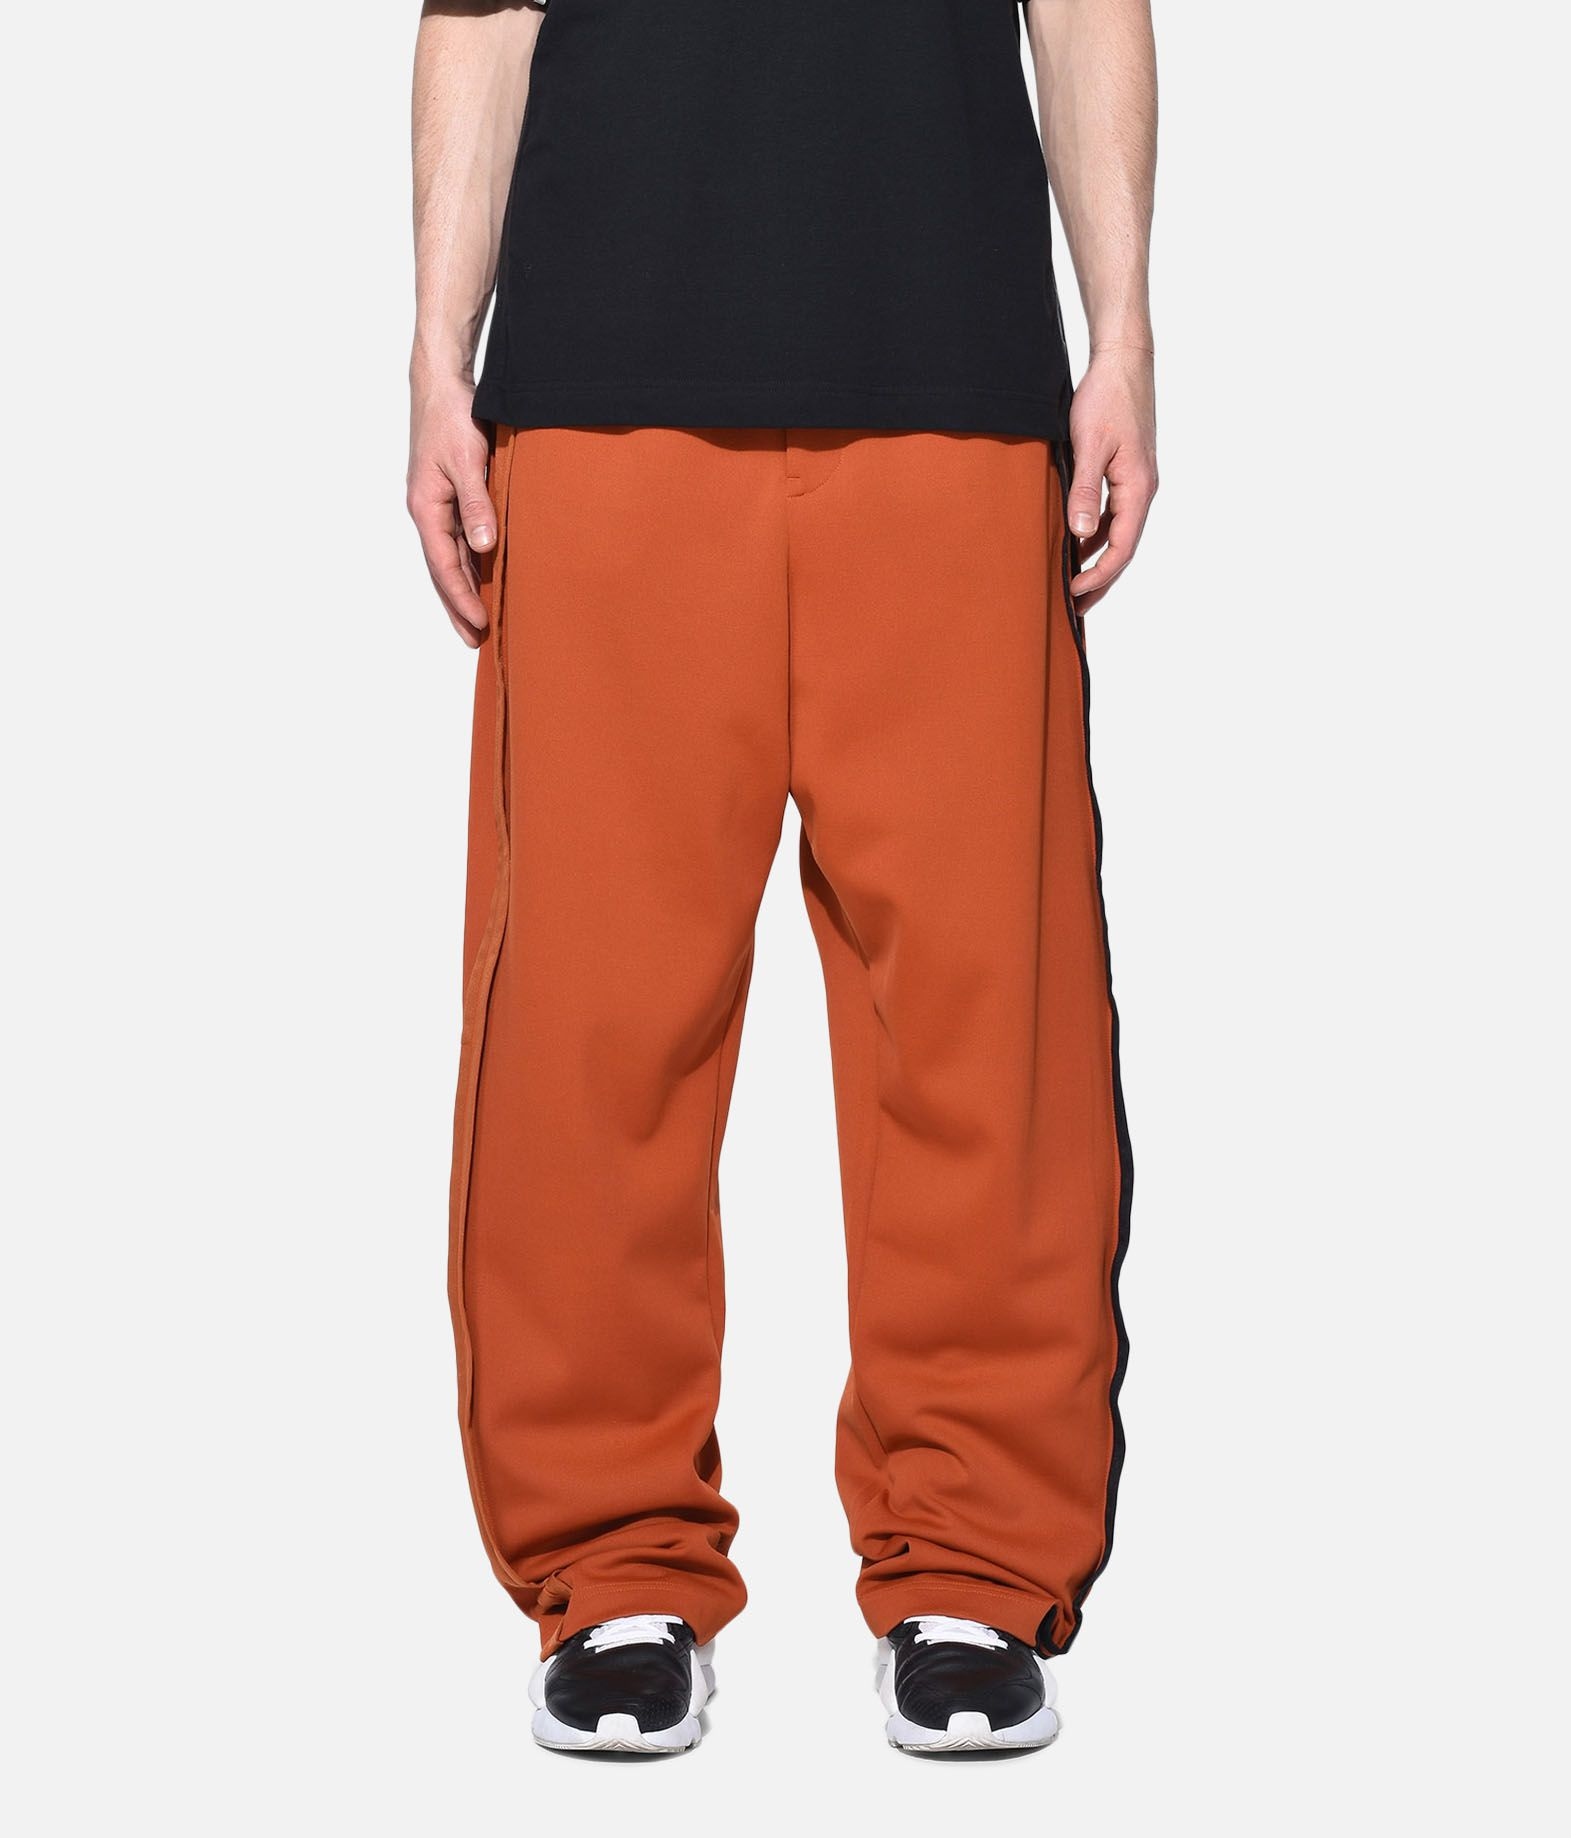 Y-3 Y-3 3-Stripes Selvedge Wide Pants Tracksuit pants Man r